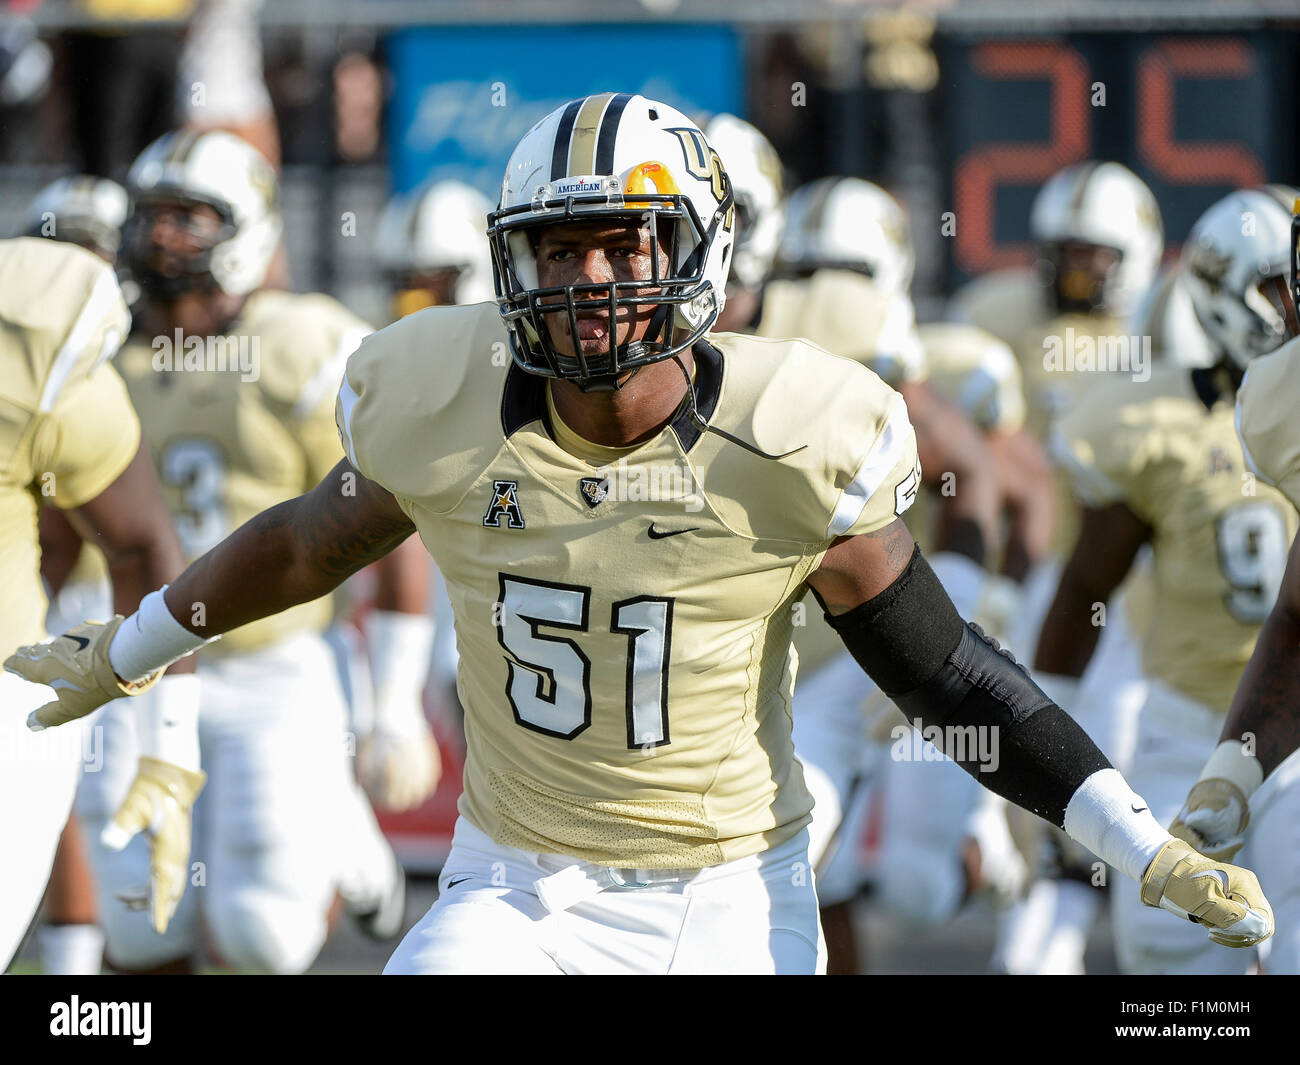 orlando, fl, usa. 3rd sep, 2015. ucf knights linebacker errol clarke